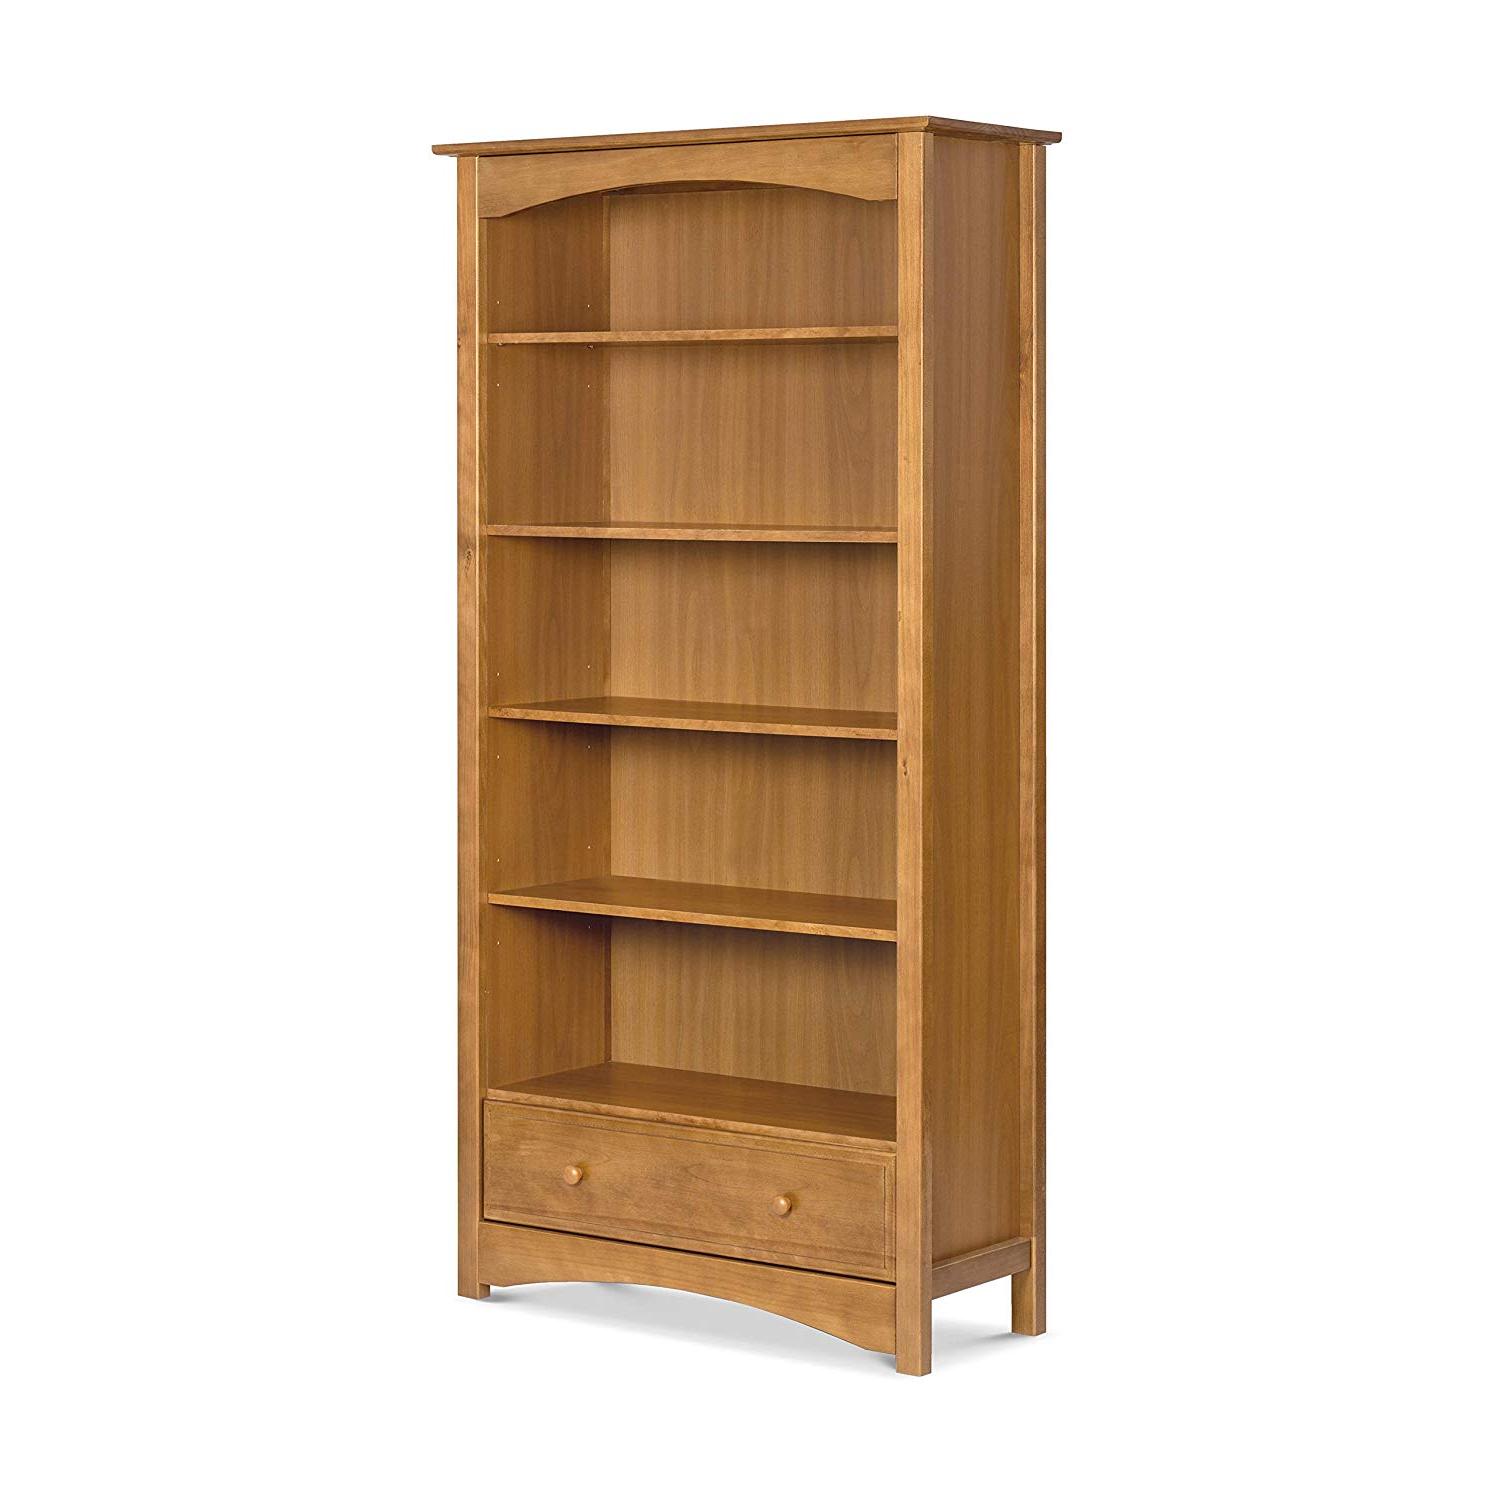 Mdb Standard Bookcases Regarding Current Davinci Mdb Book Case, White (View 2 of 20)